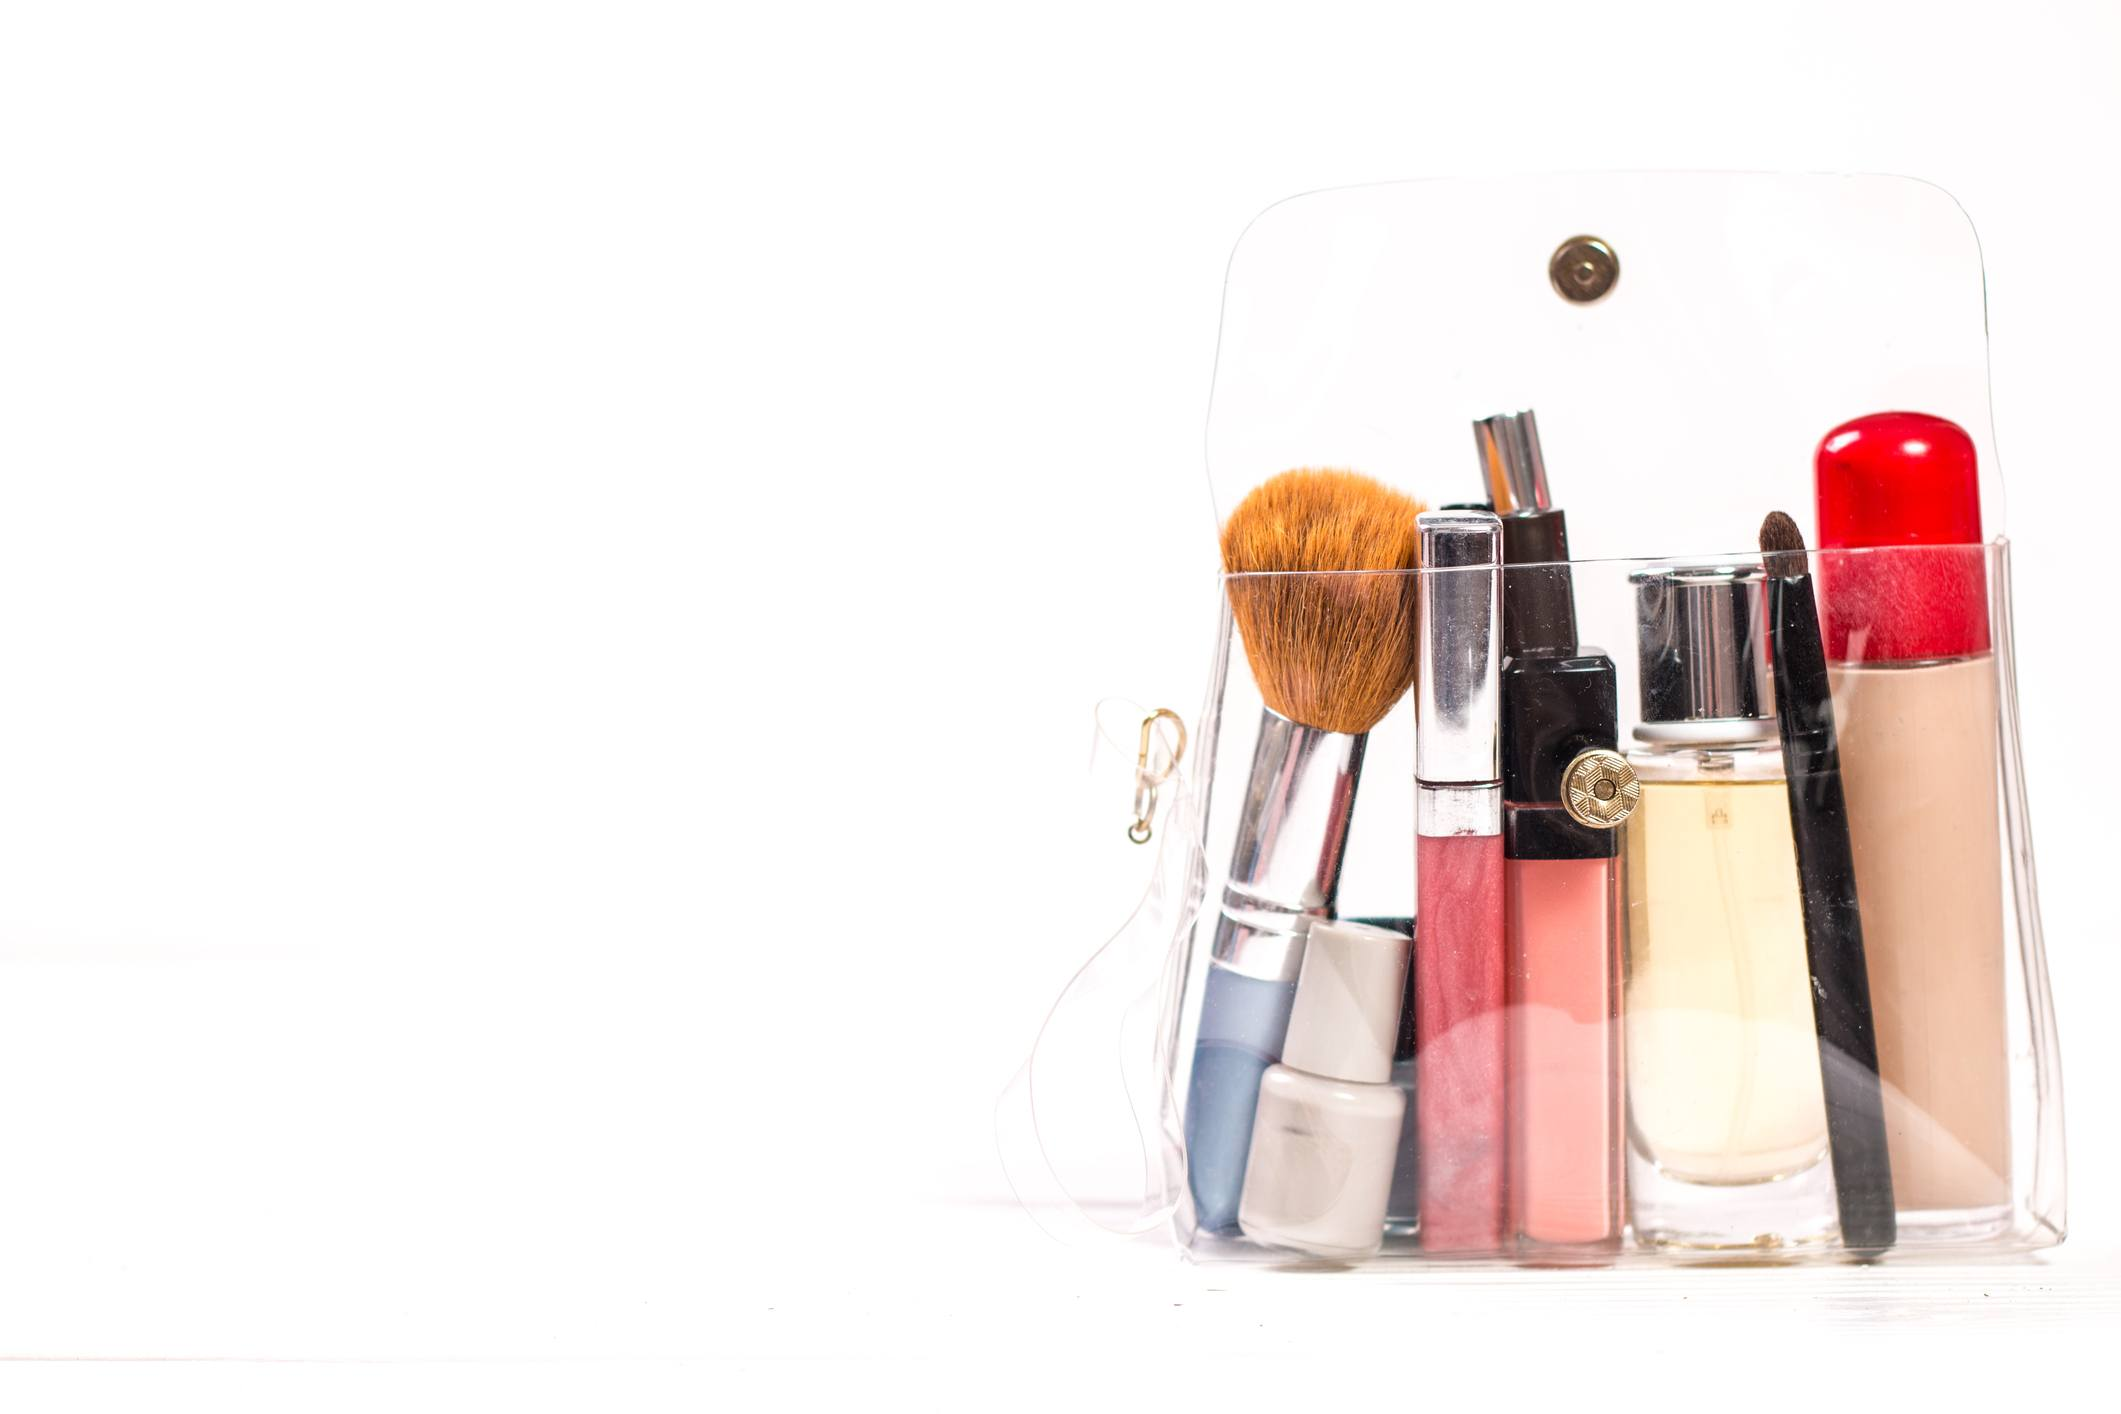 makeup products on wooden background